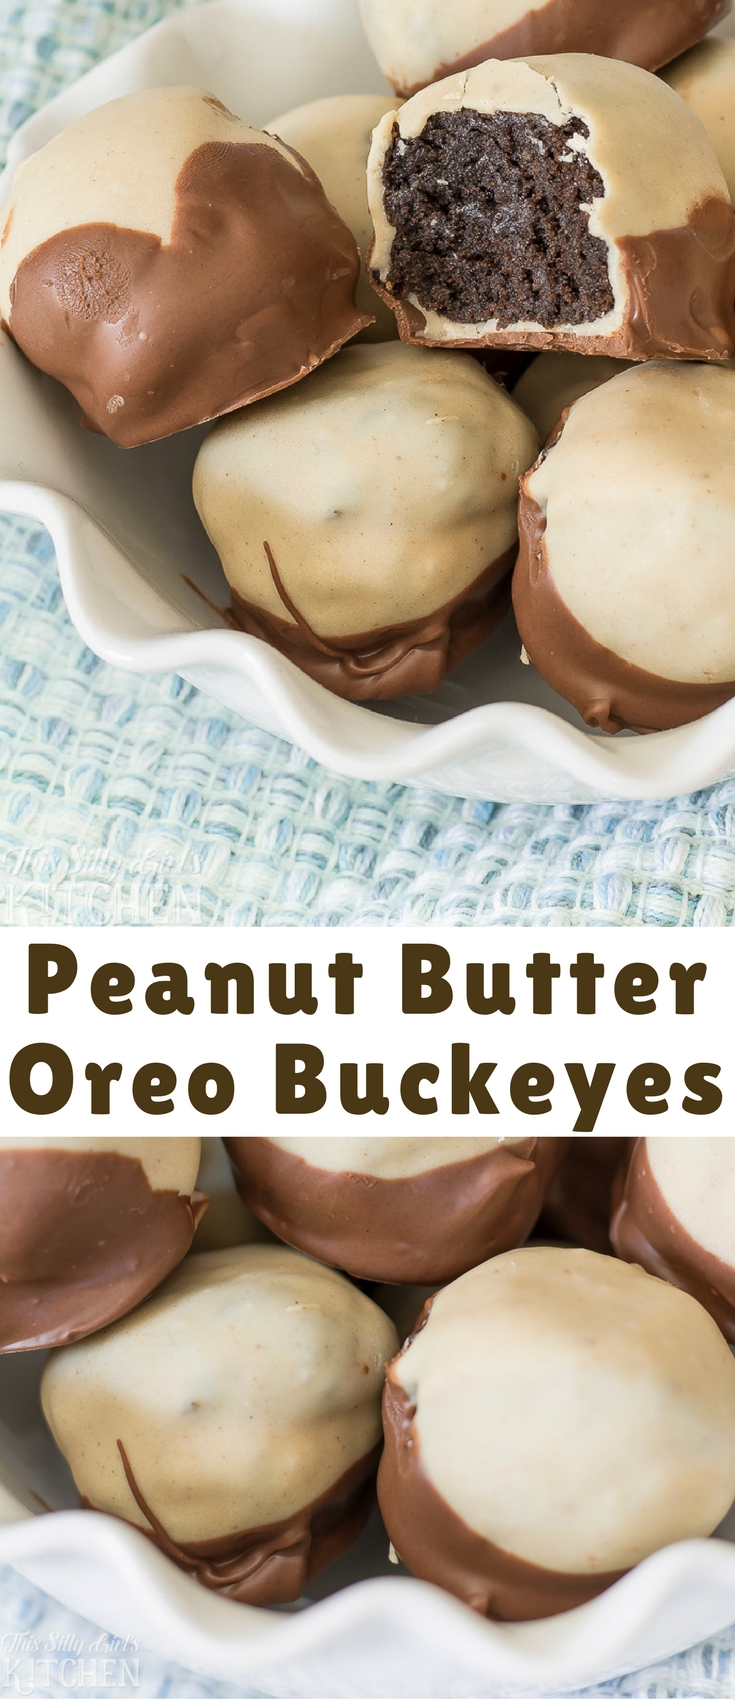 Peanut Butter Oreo Buckeyes, peanut butter Oreo truffles dipped in peanut butter coating and milk chocolate!